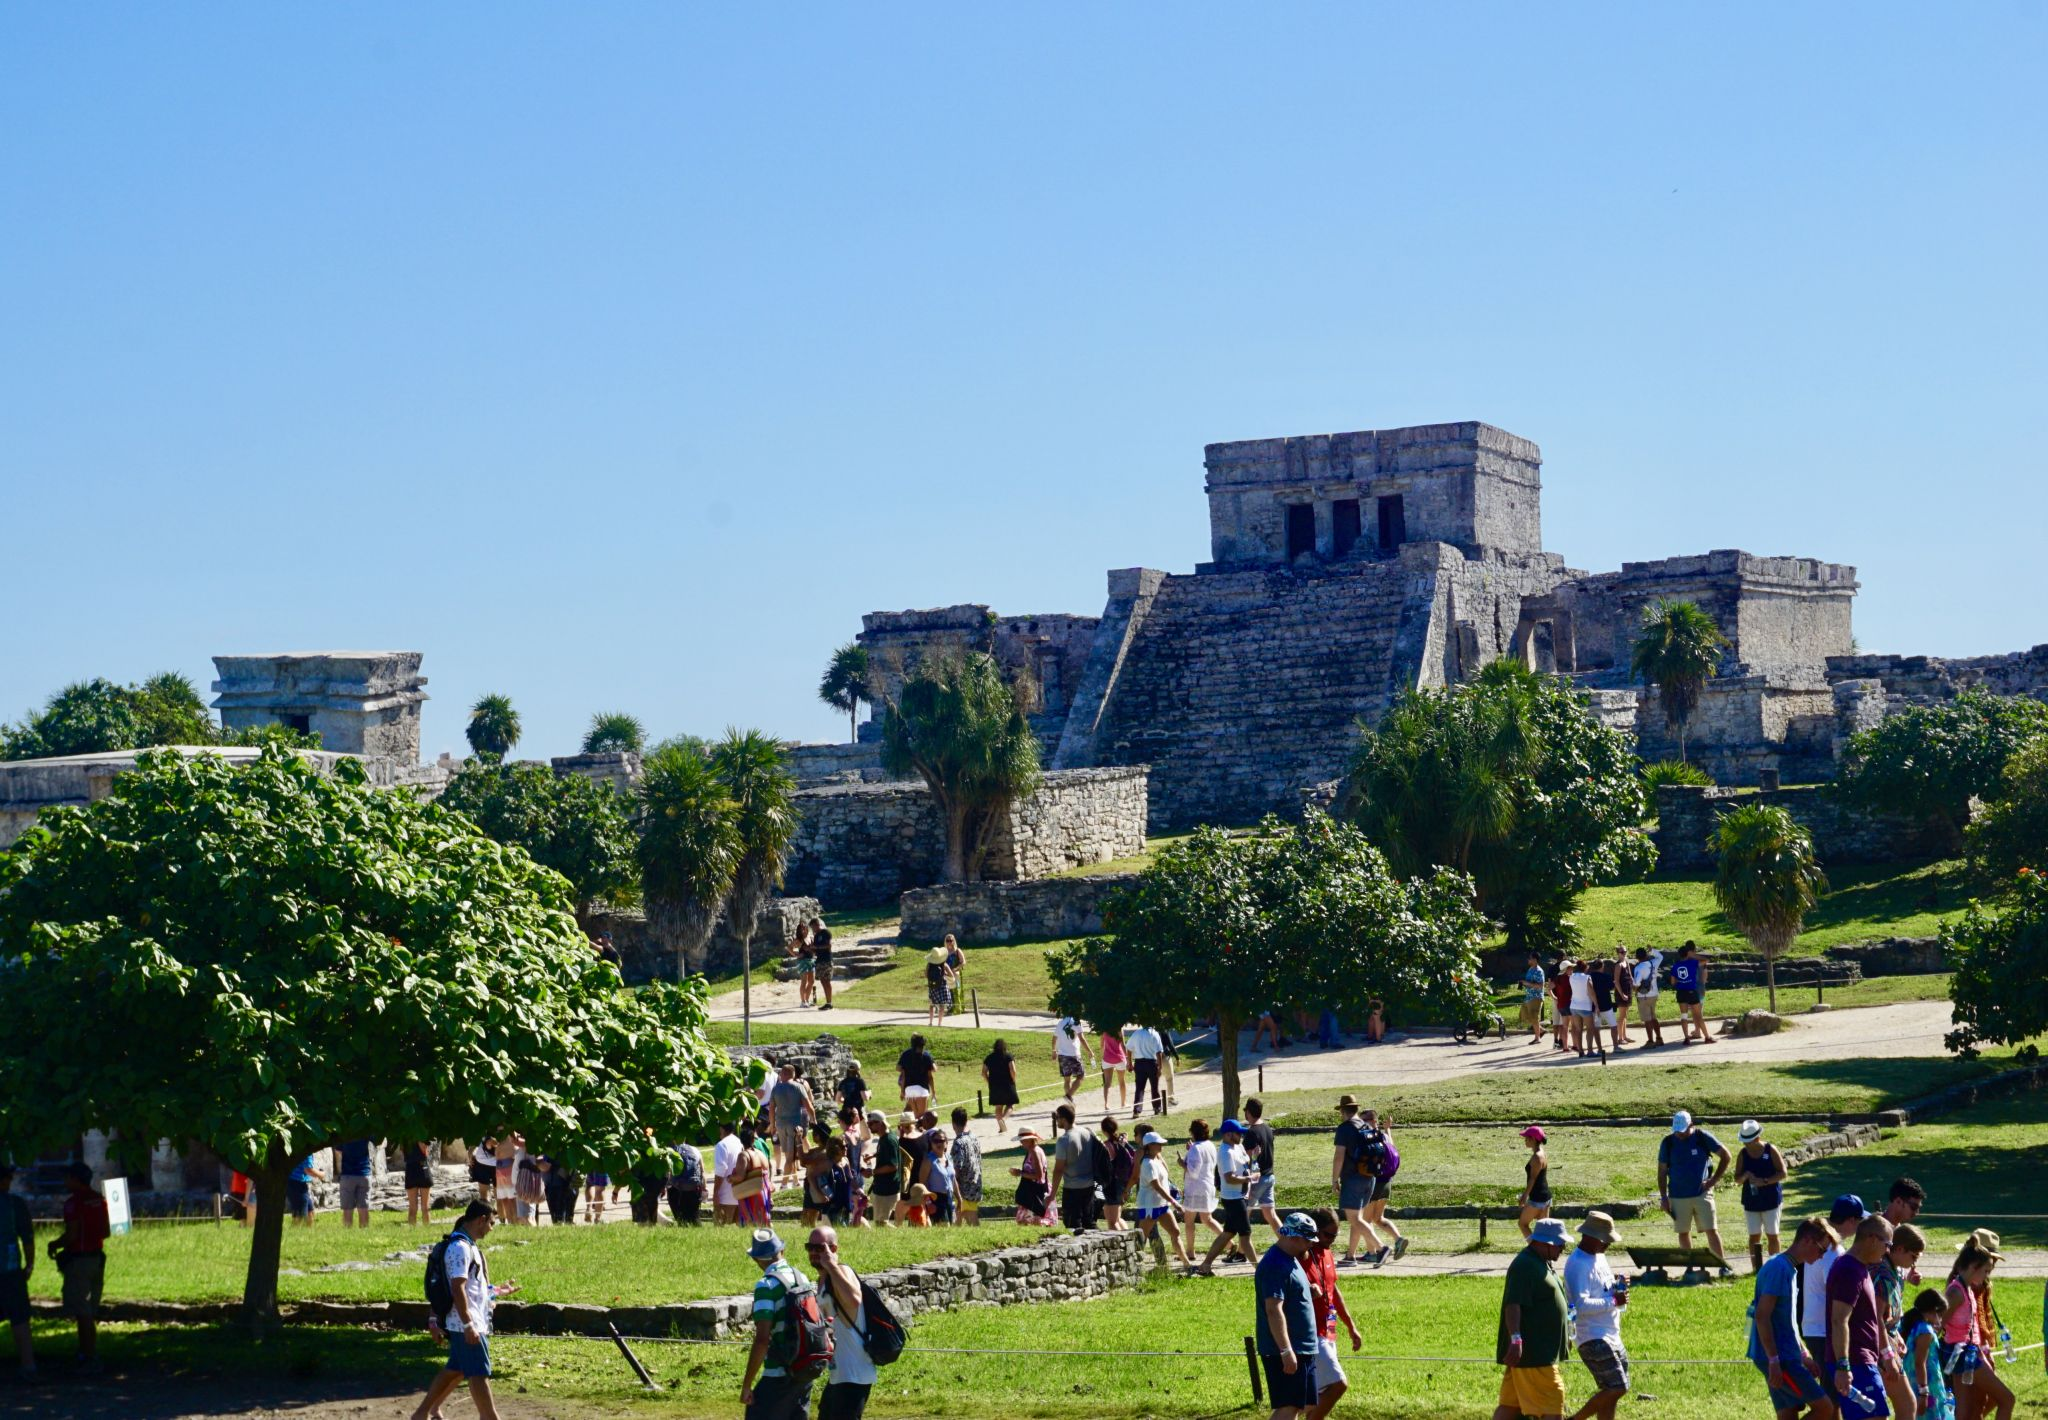 El Castillo in Tulum ruins and how to visit the ancient site